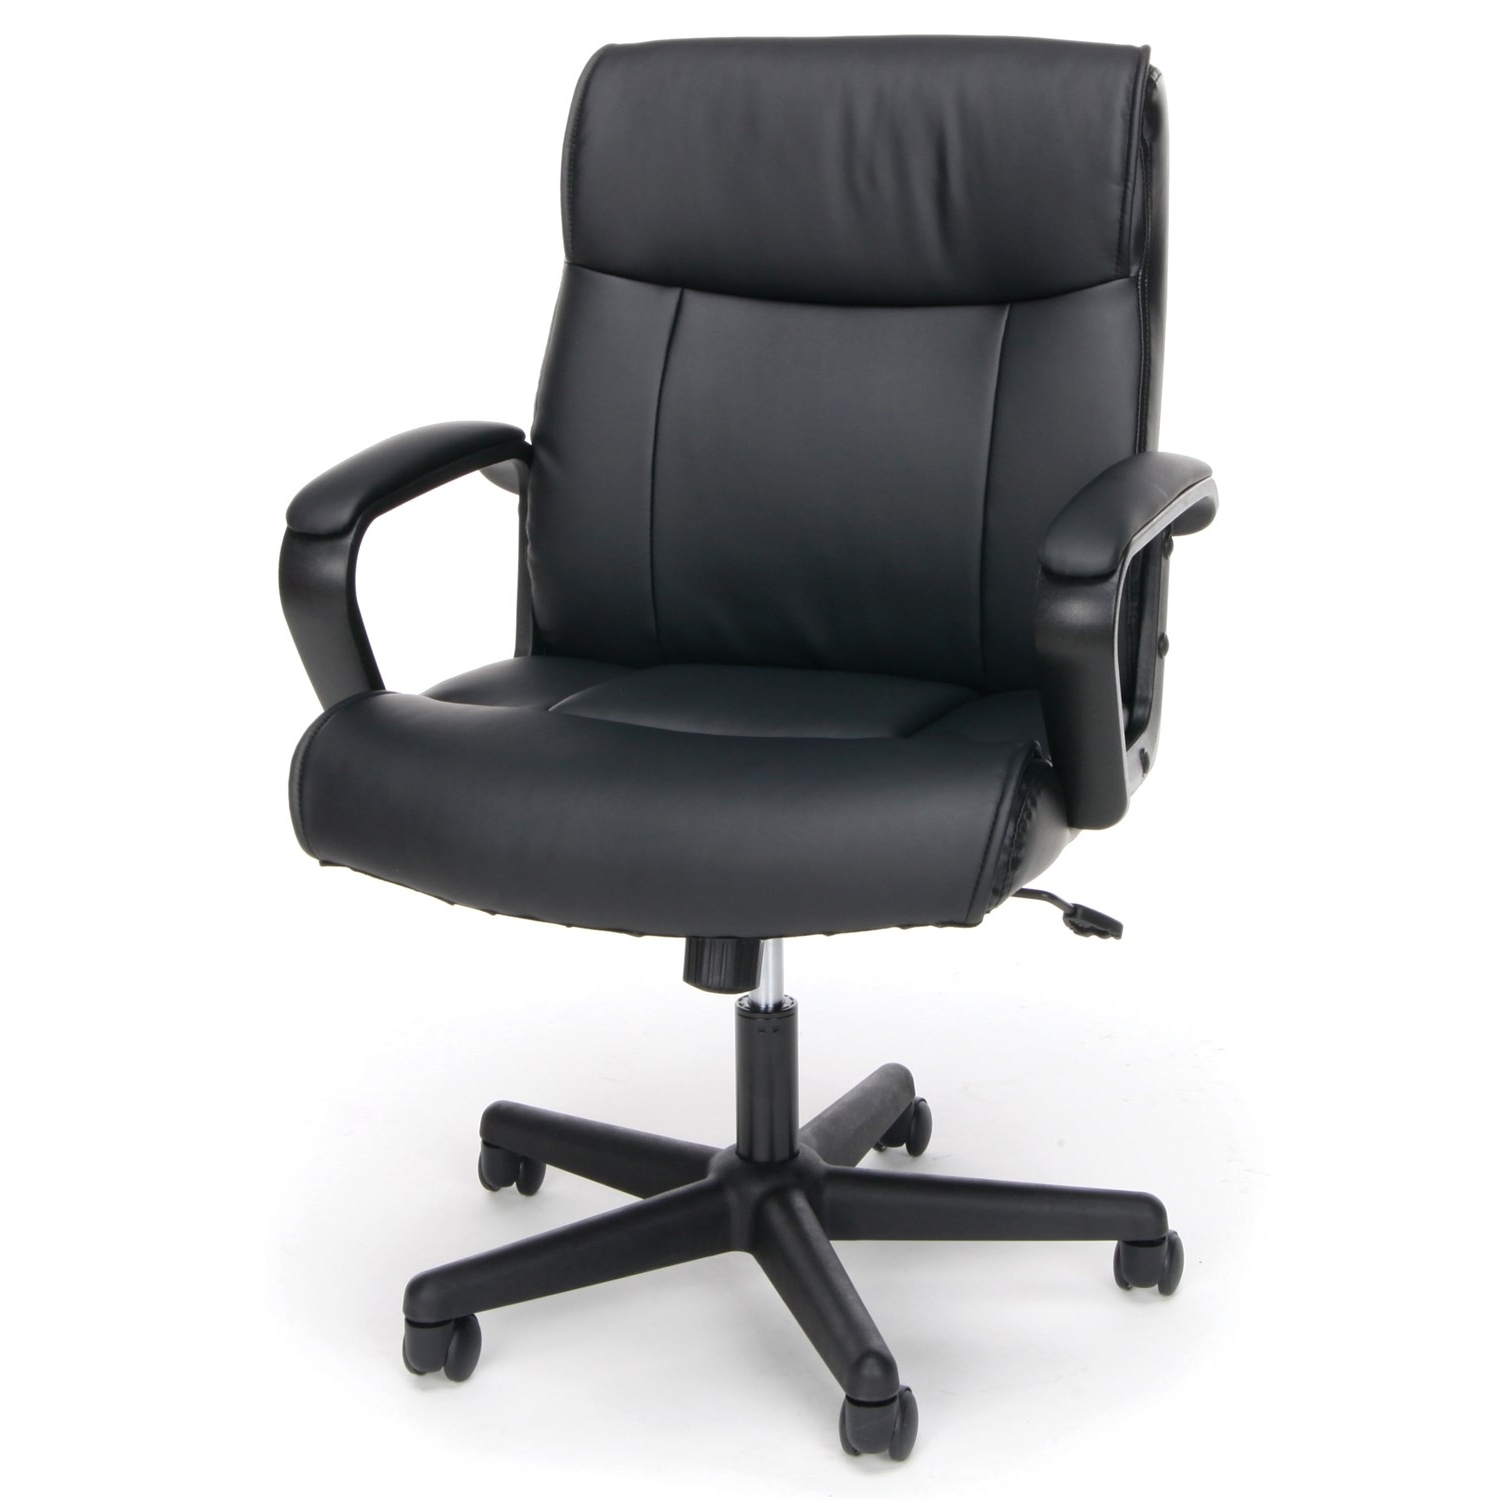 Ofm Ess 6010 Essentials Leather Executive Office Chair In Black Pertaining To Most Recent Black Executive Office Chairs (View 15 of 20)